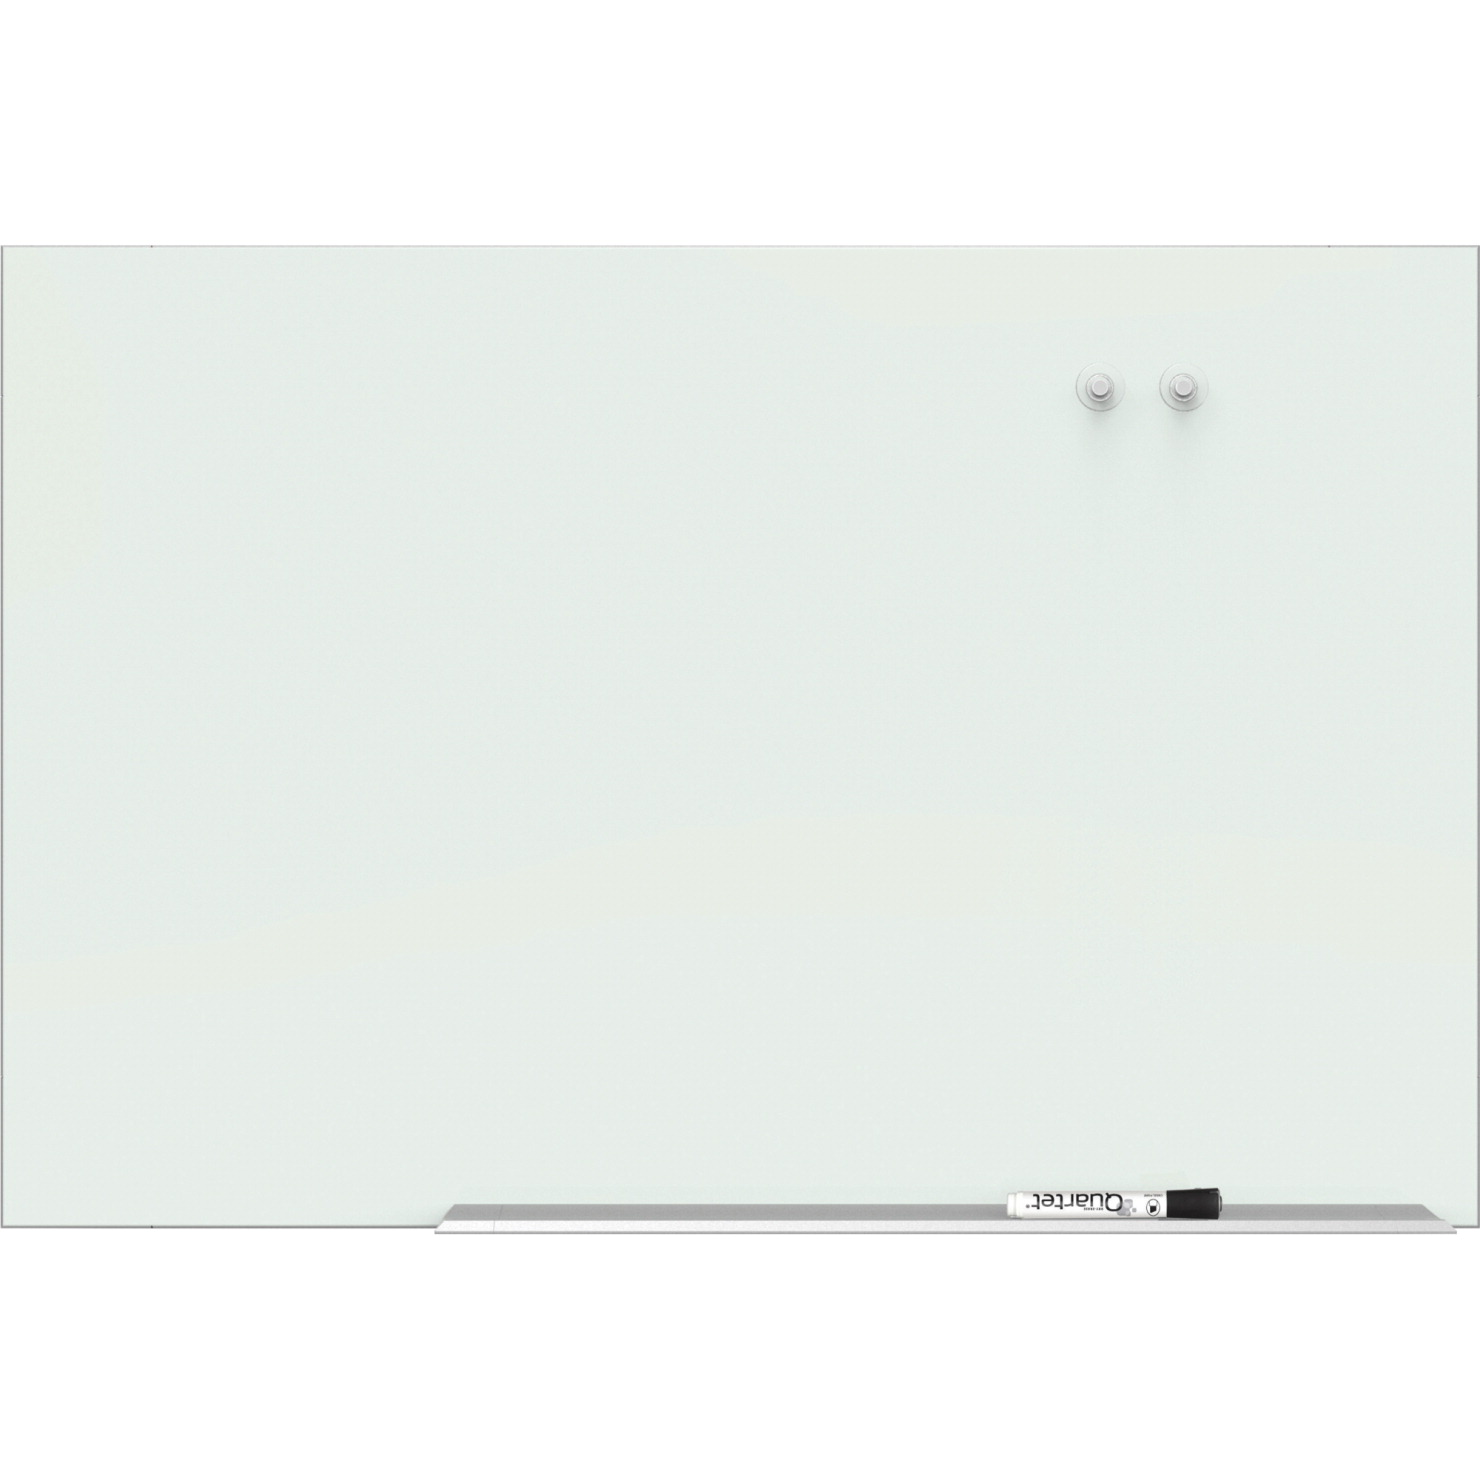 Quartet Element Magnetic Glass Dry-erase Board, 74 x 42 Inches, White